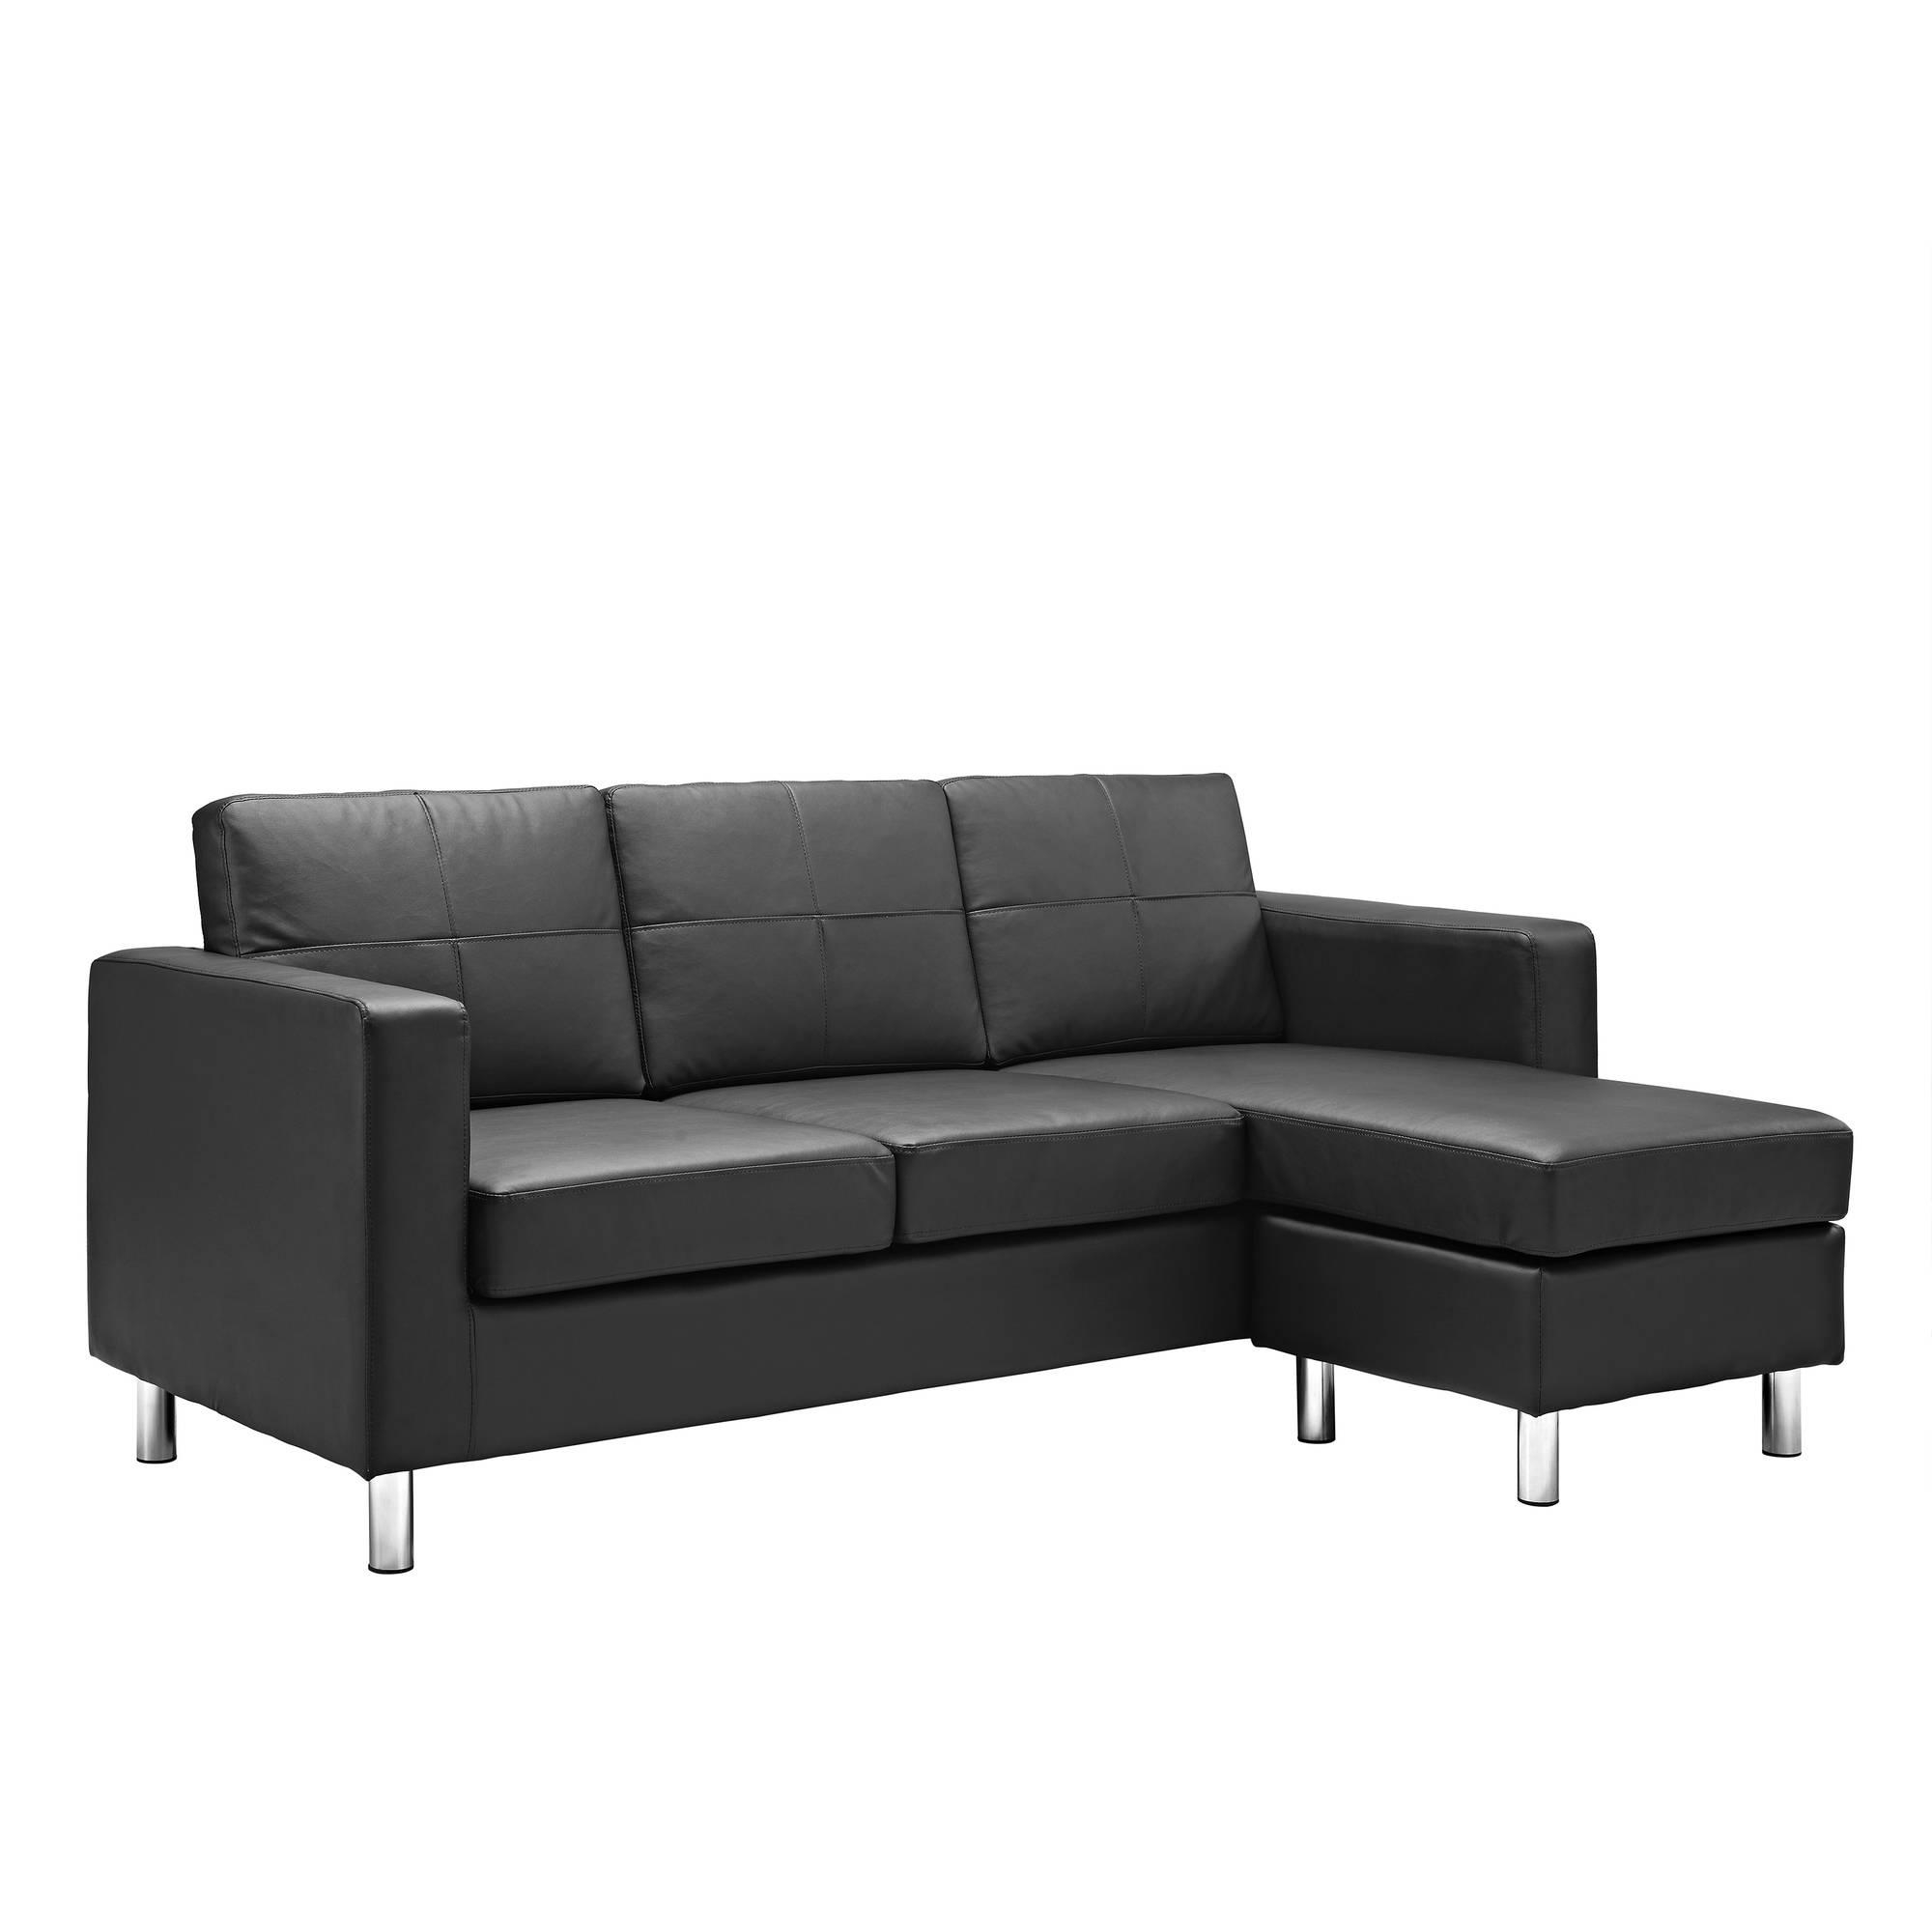 Tiny Sectional Sofa – Hotelsbacau Intended For Tiny Sofas (Image 18 of 20)